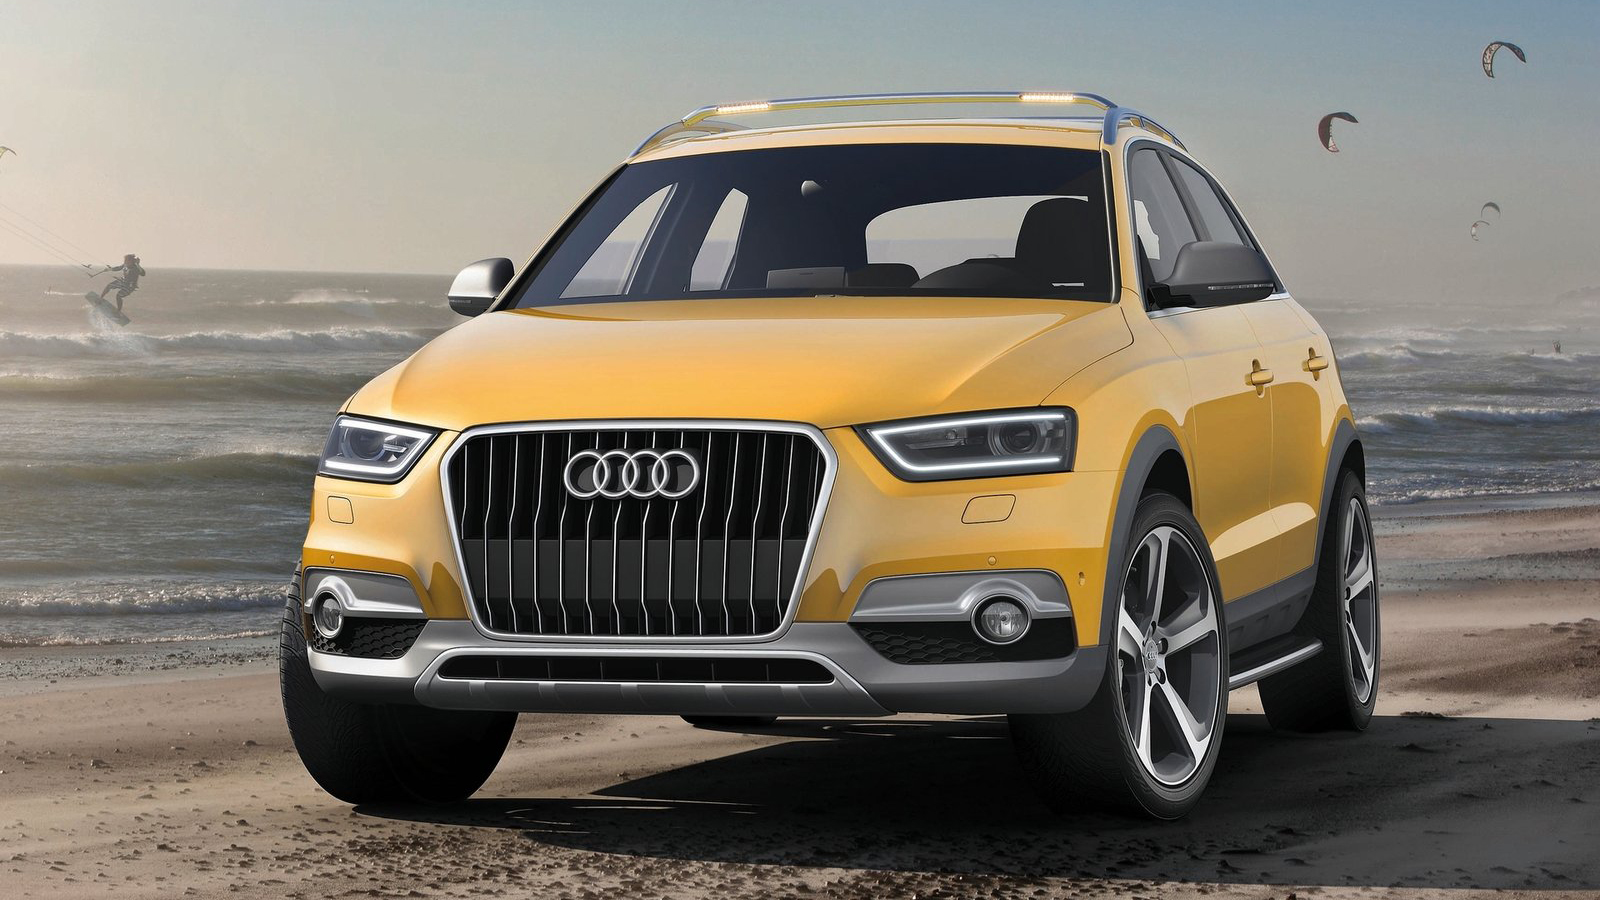 Odi car q7 submited images